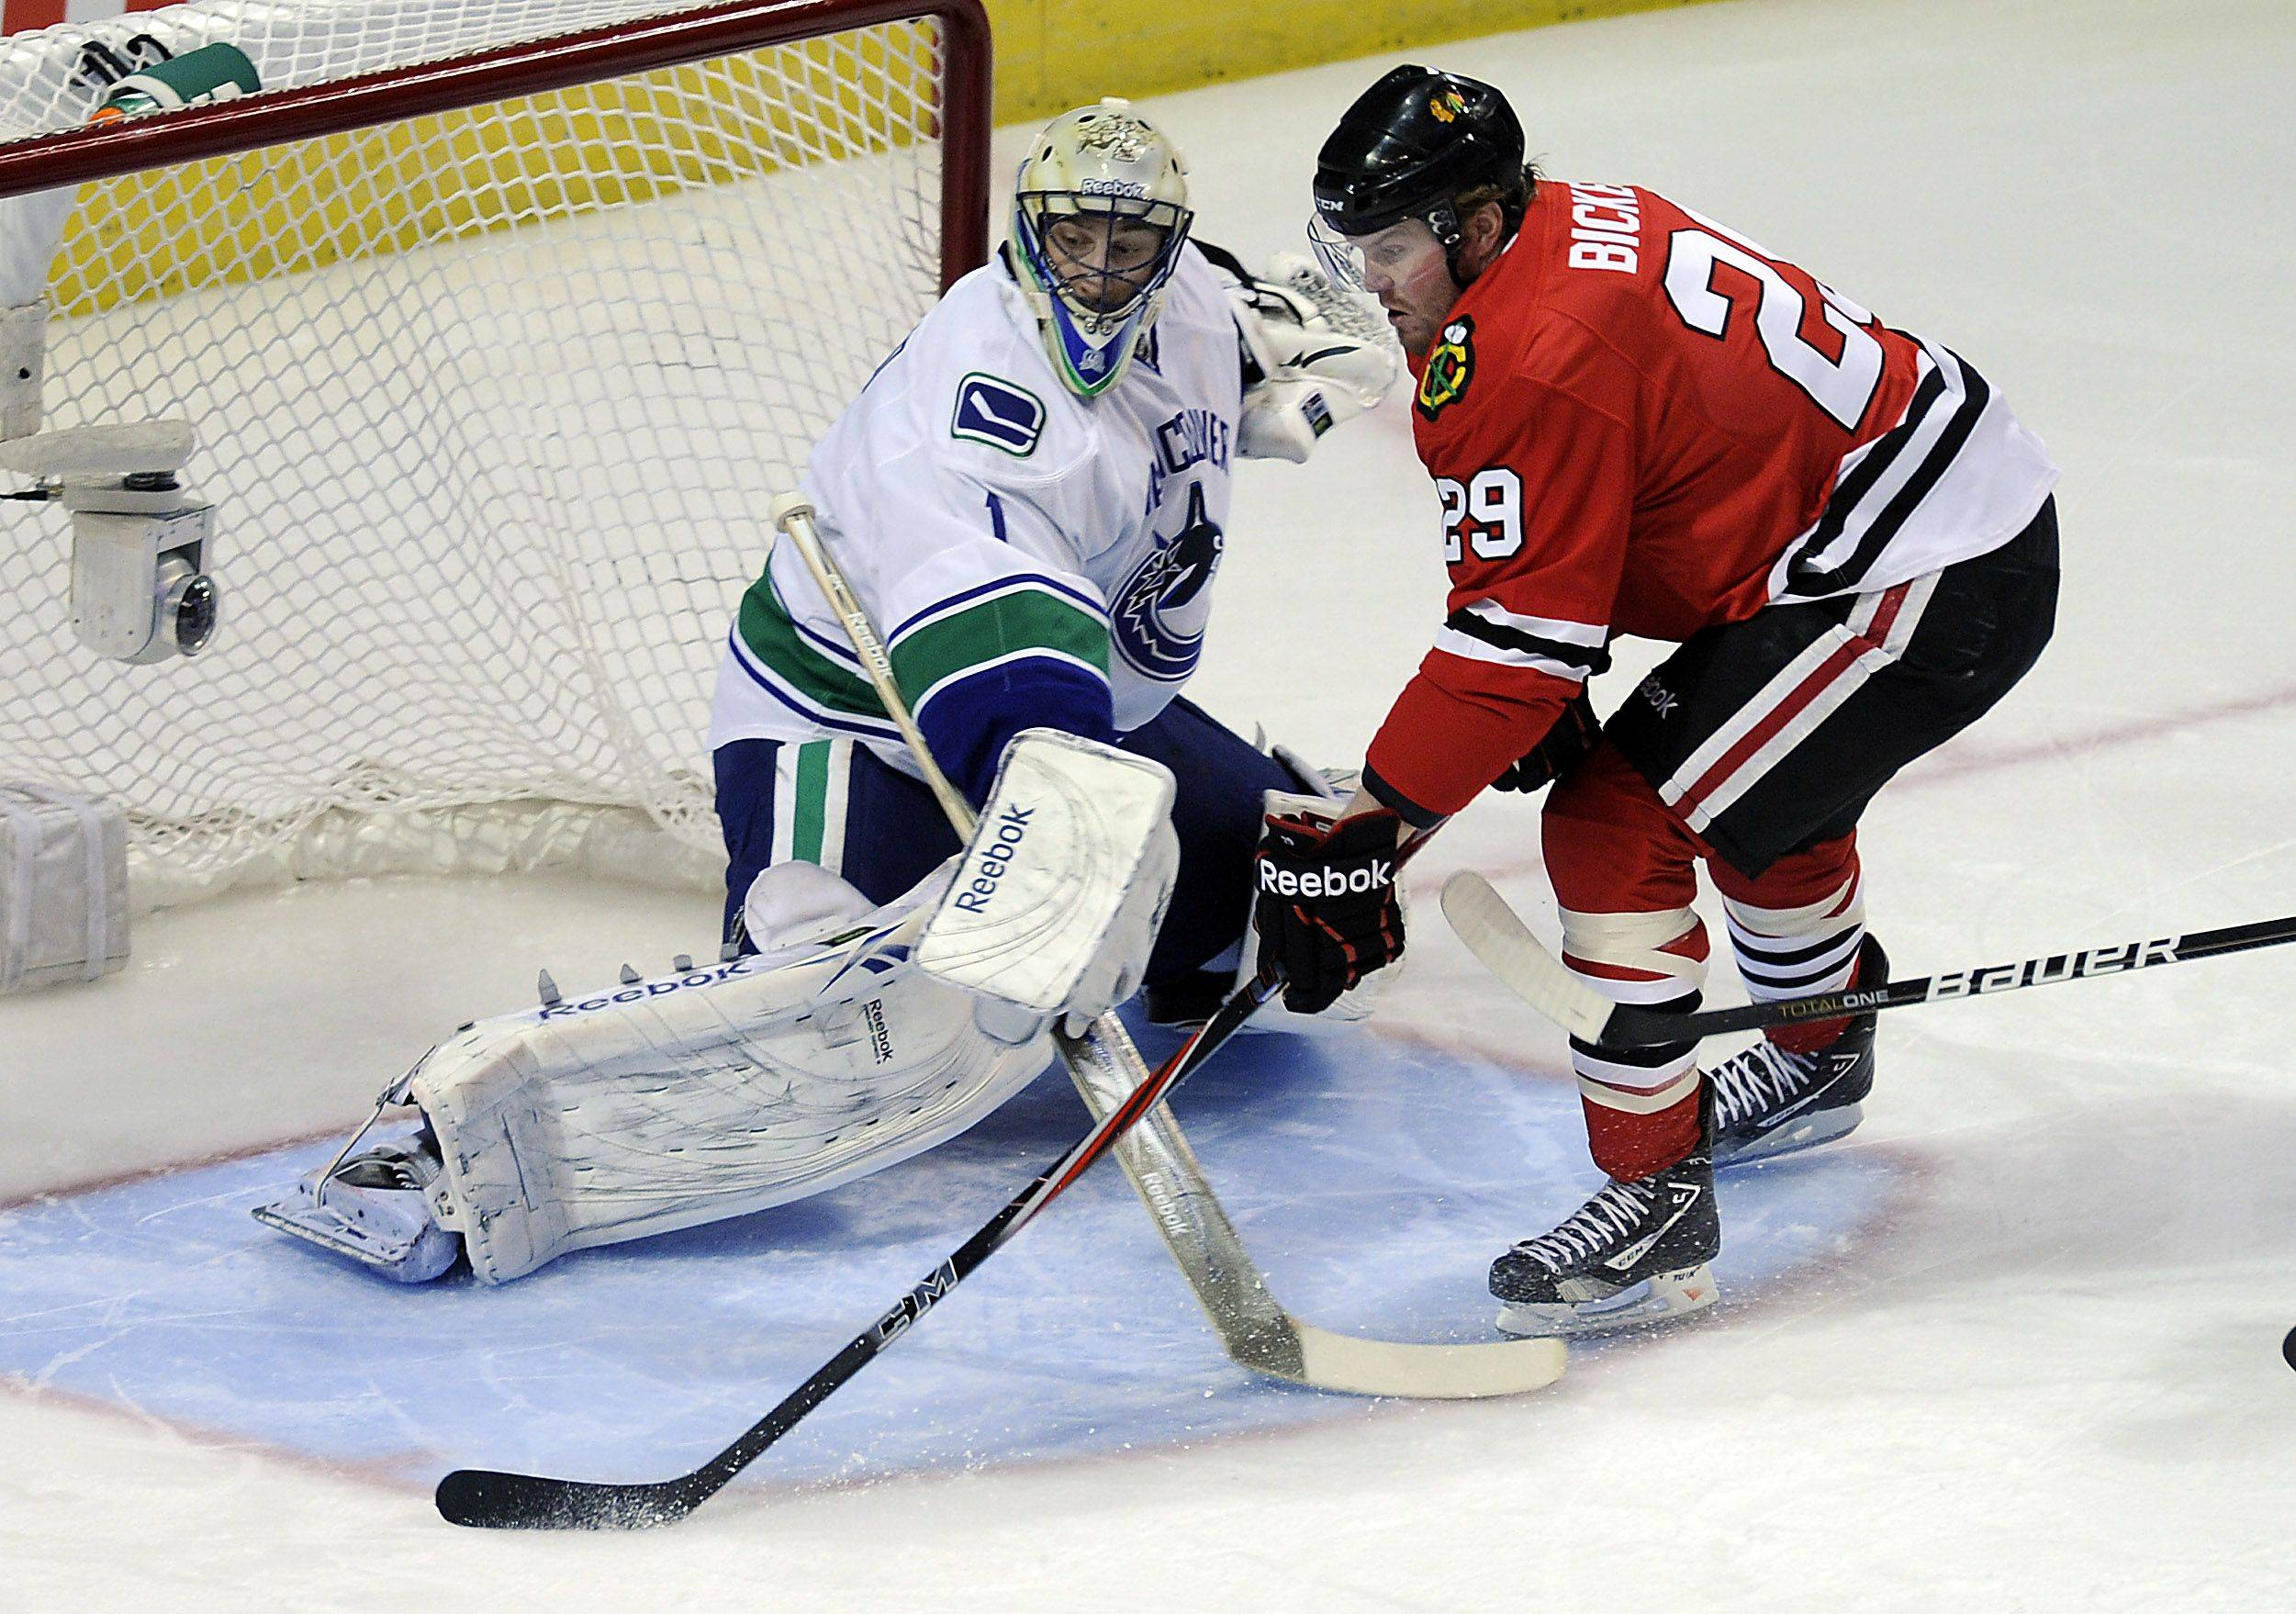 Bryan Bickell scores on Canucks goalie Roberto Luongo in the first period.